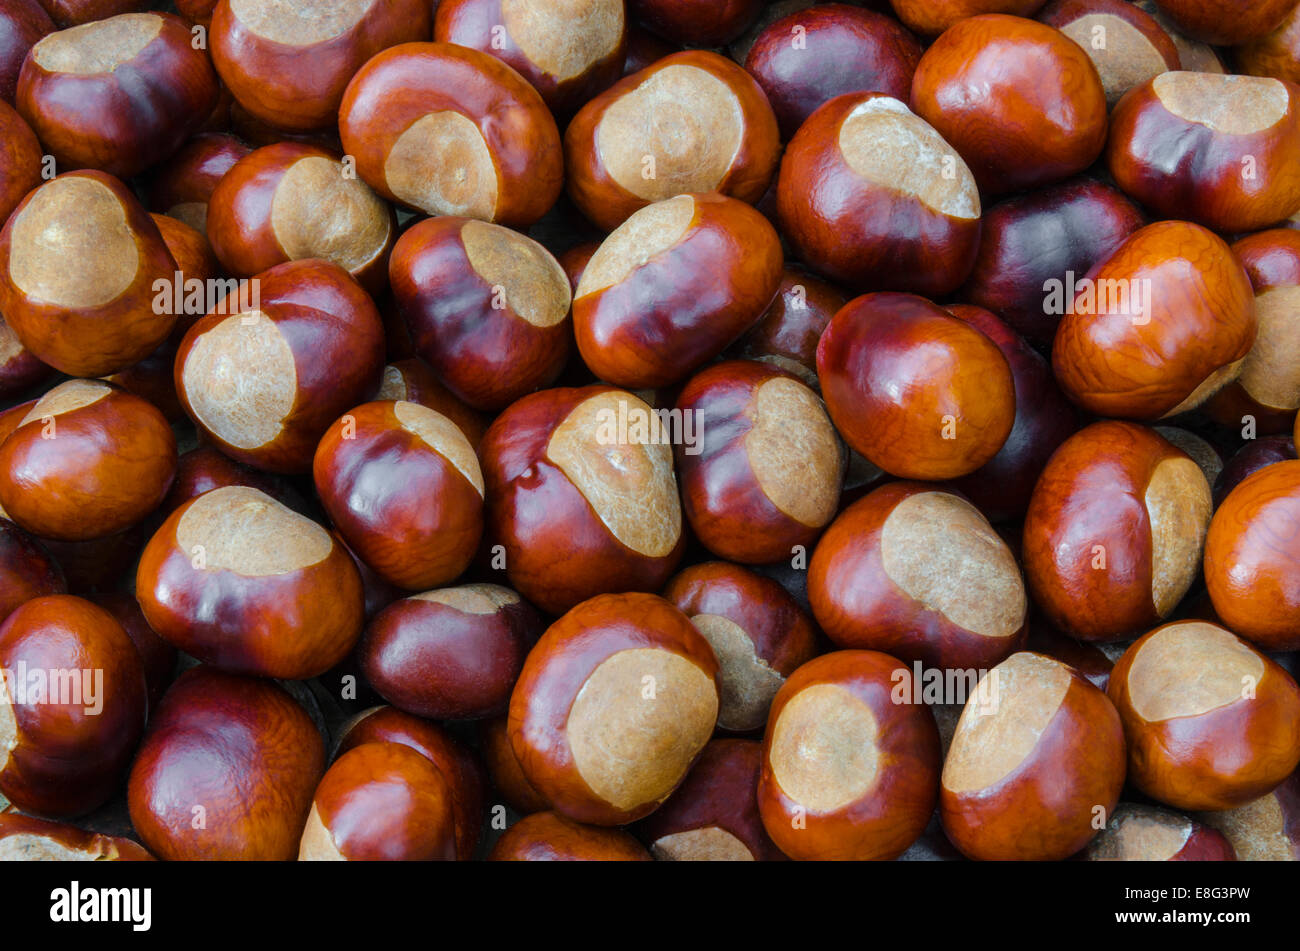 Bountiful supply of fresh Horse-chestnuts (conkers) - Stock Image